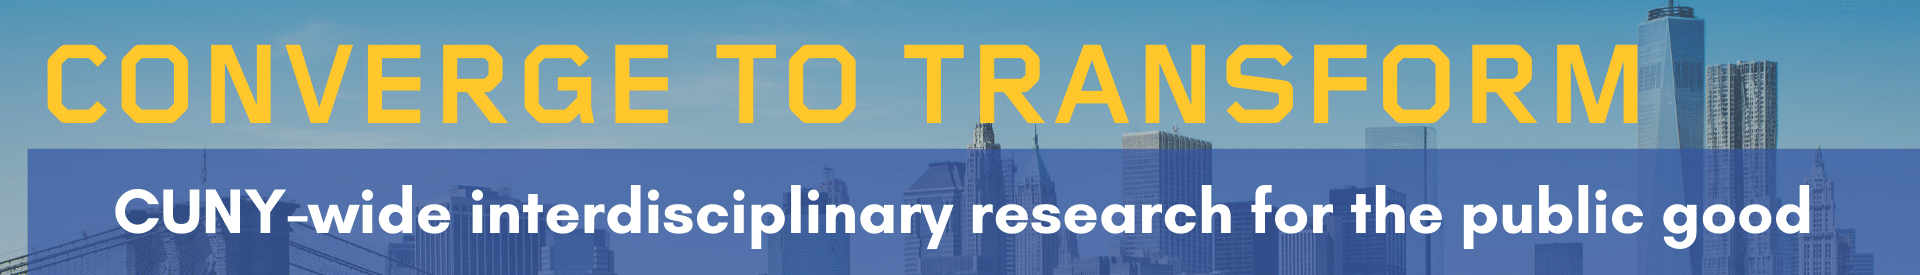 Converge to Transform: CUNY-wide interdisciplinary research for the public good